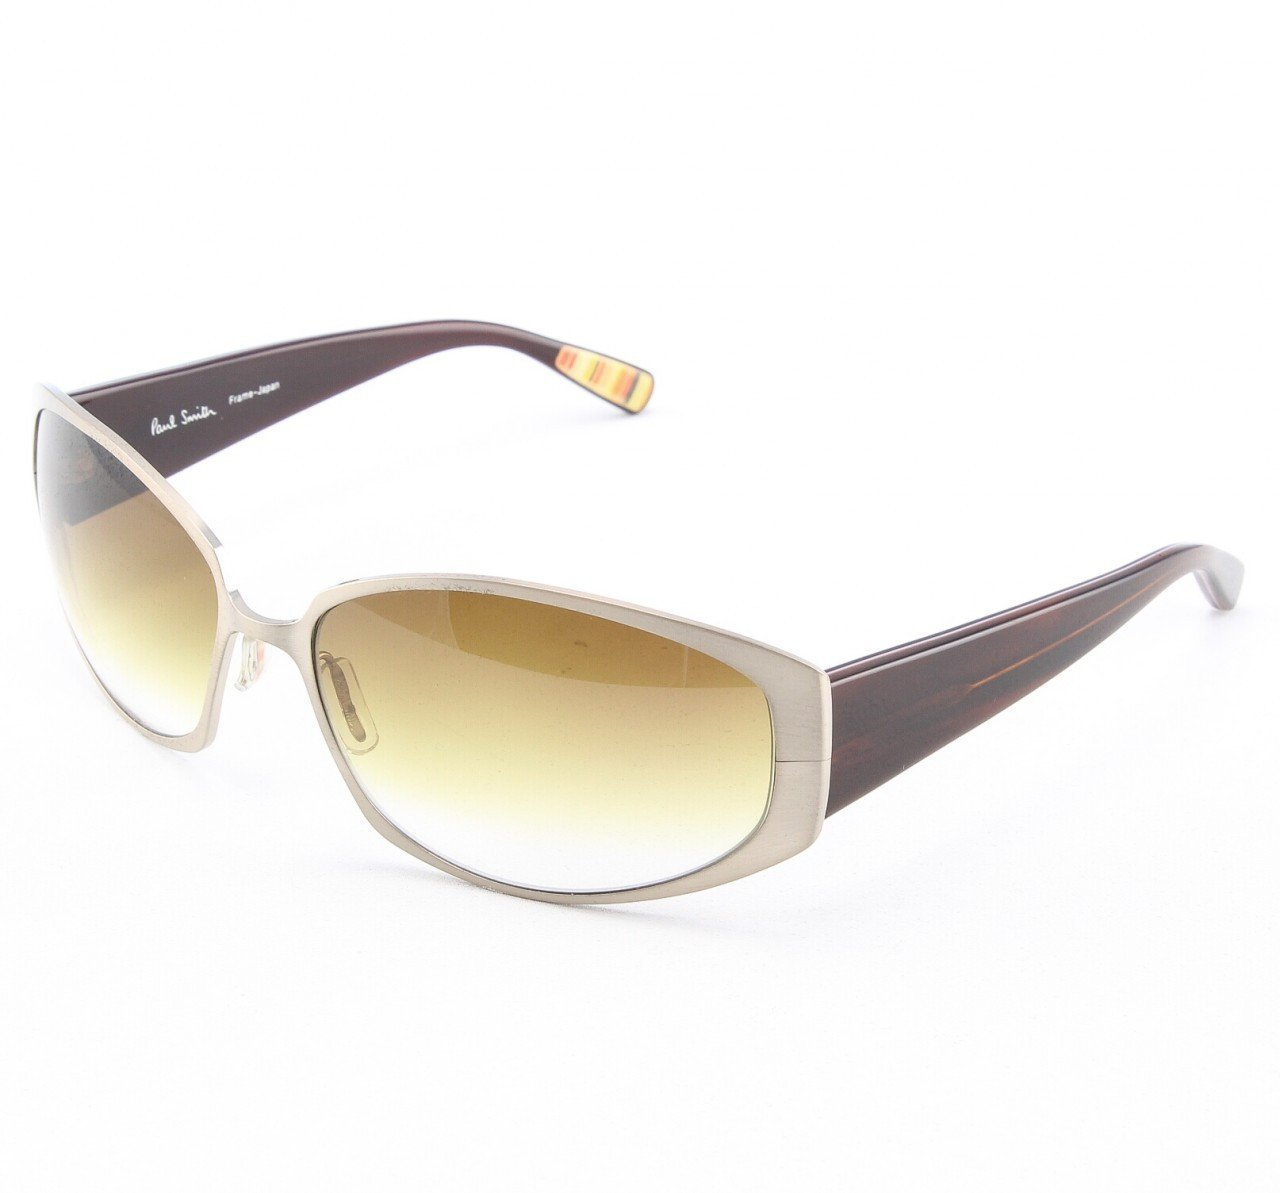 Paul Smith PS-819 BCH Sunglasses Bronze Chocolate w/ Brown Gradient Lenses